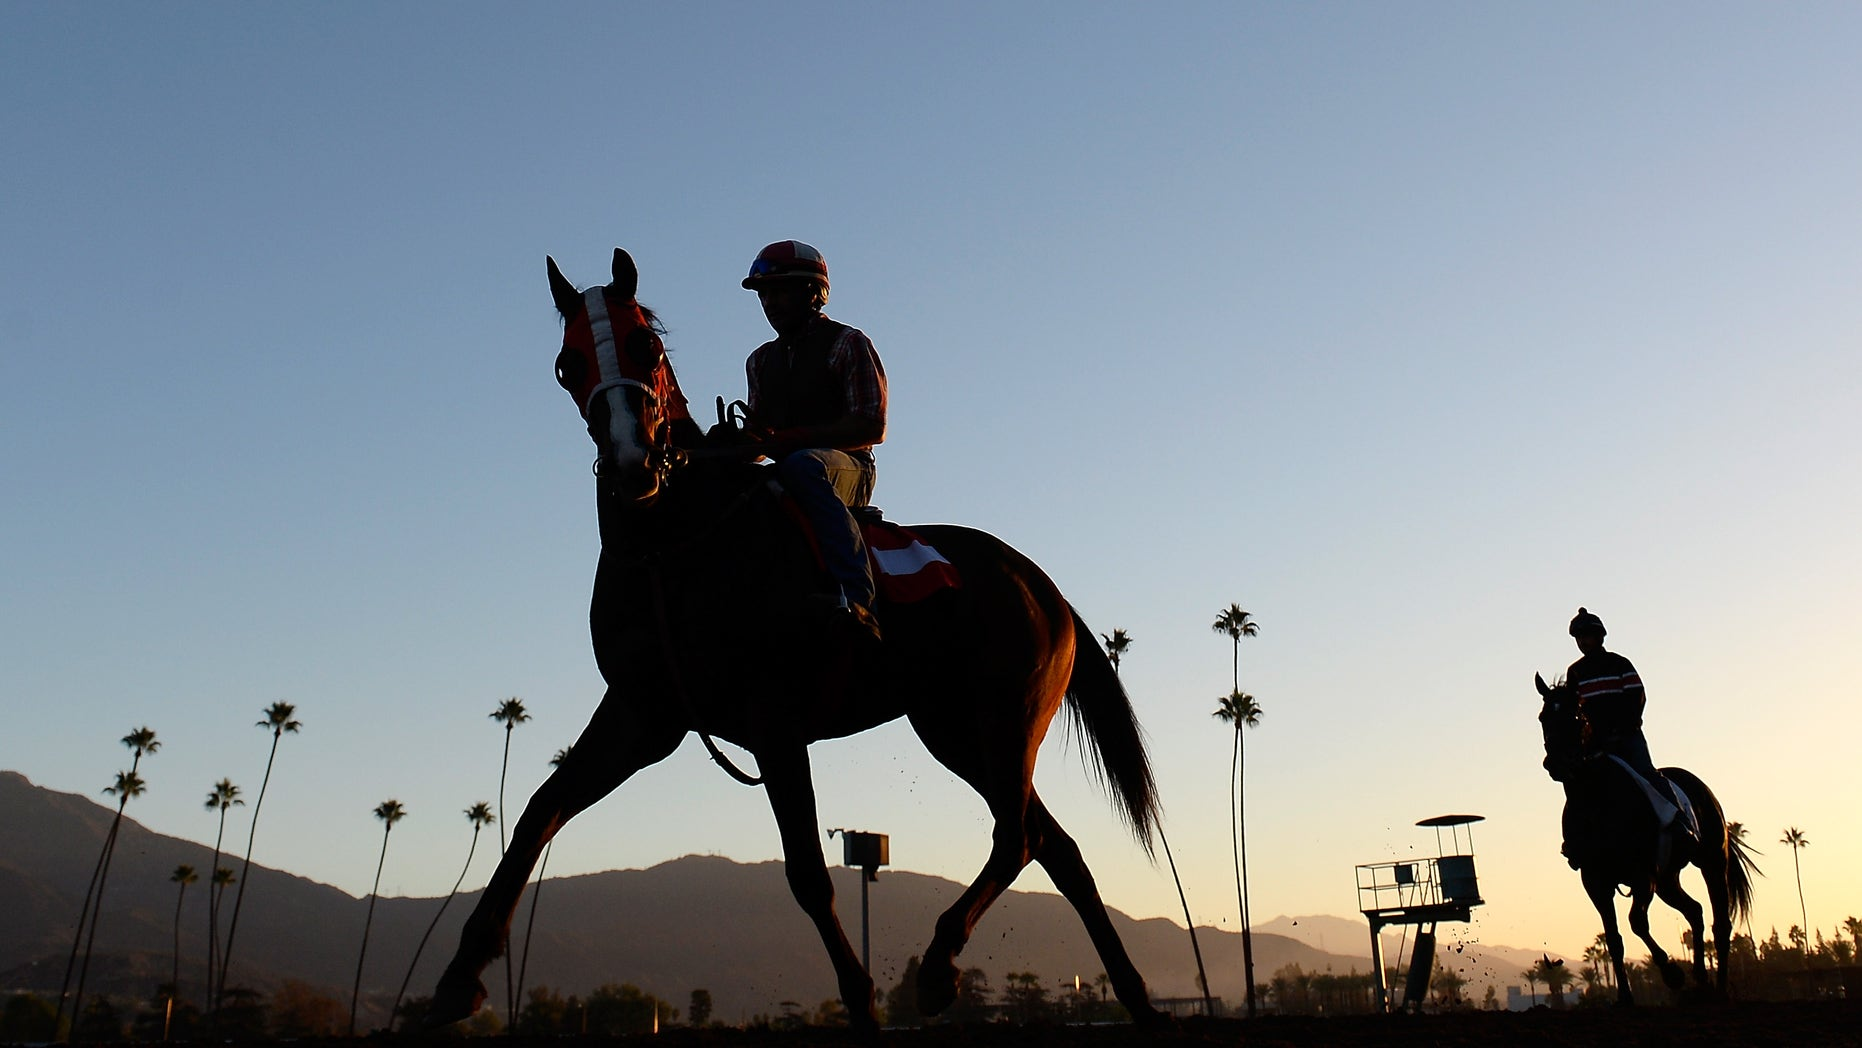 Horses training in credentials for a 2014 Breeder's Cup during Santa Anita Park on Oct. 29, 2014, in Arcadia, California. (Harry How/Getty Images, File)